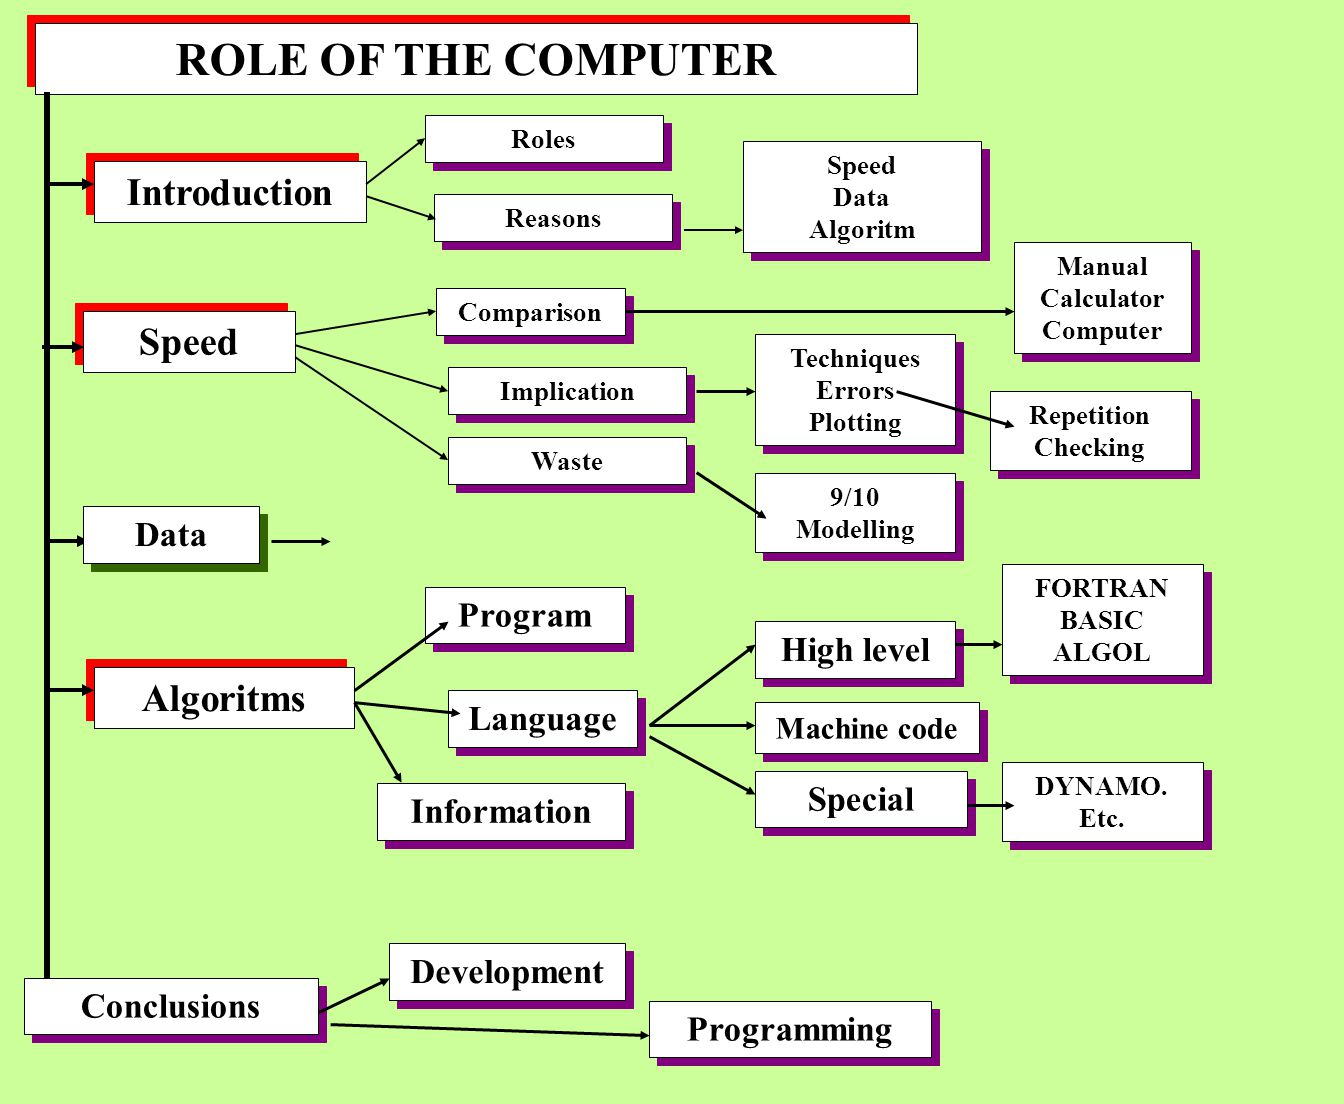 ROLE OF THE COMPUTER Introduction Speed Roles Conclusions Data Development Algoritms Reasons Speed Data Algoritm Speed Data Algoritm Comparison Implic